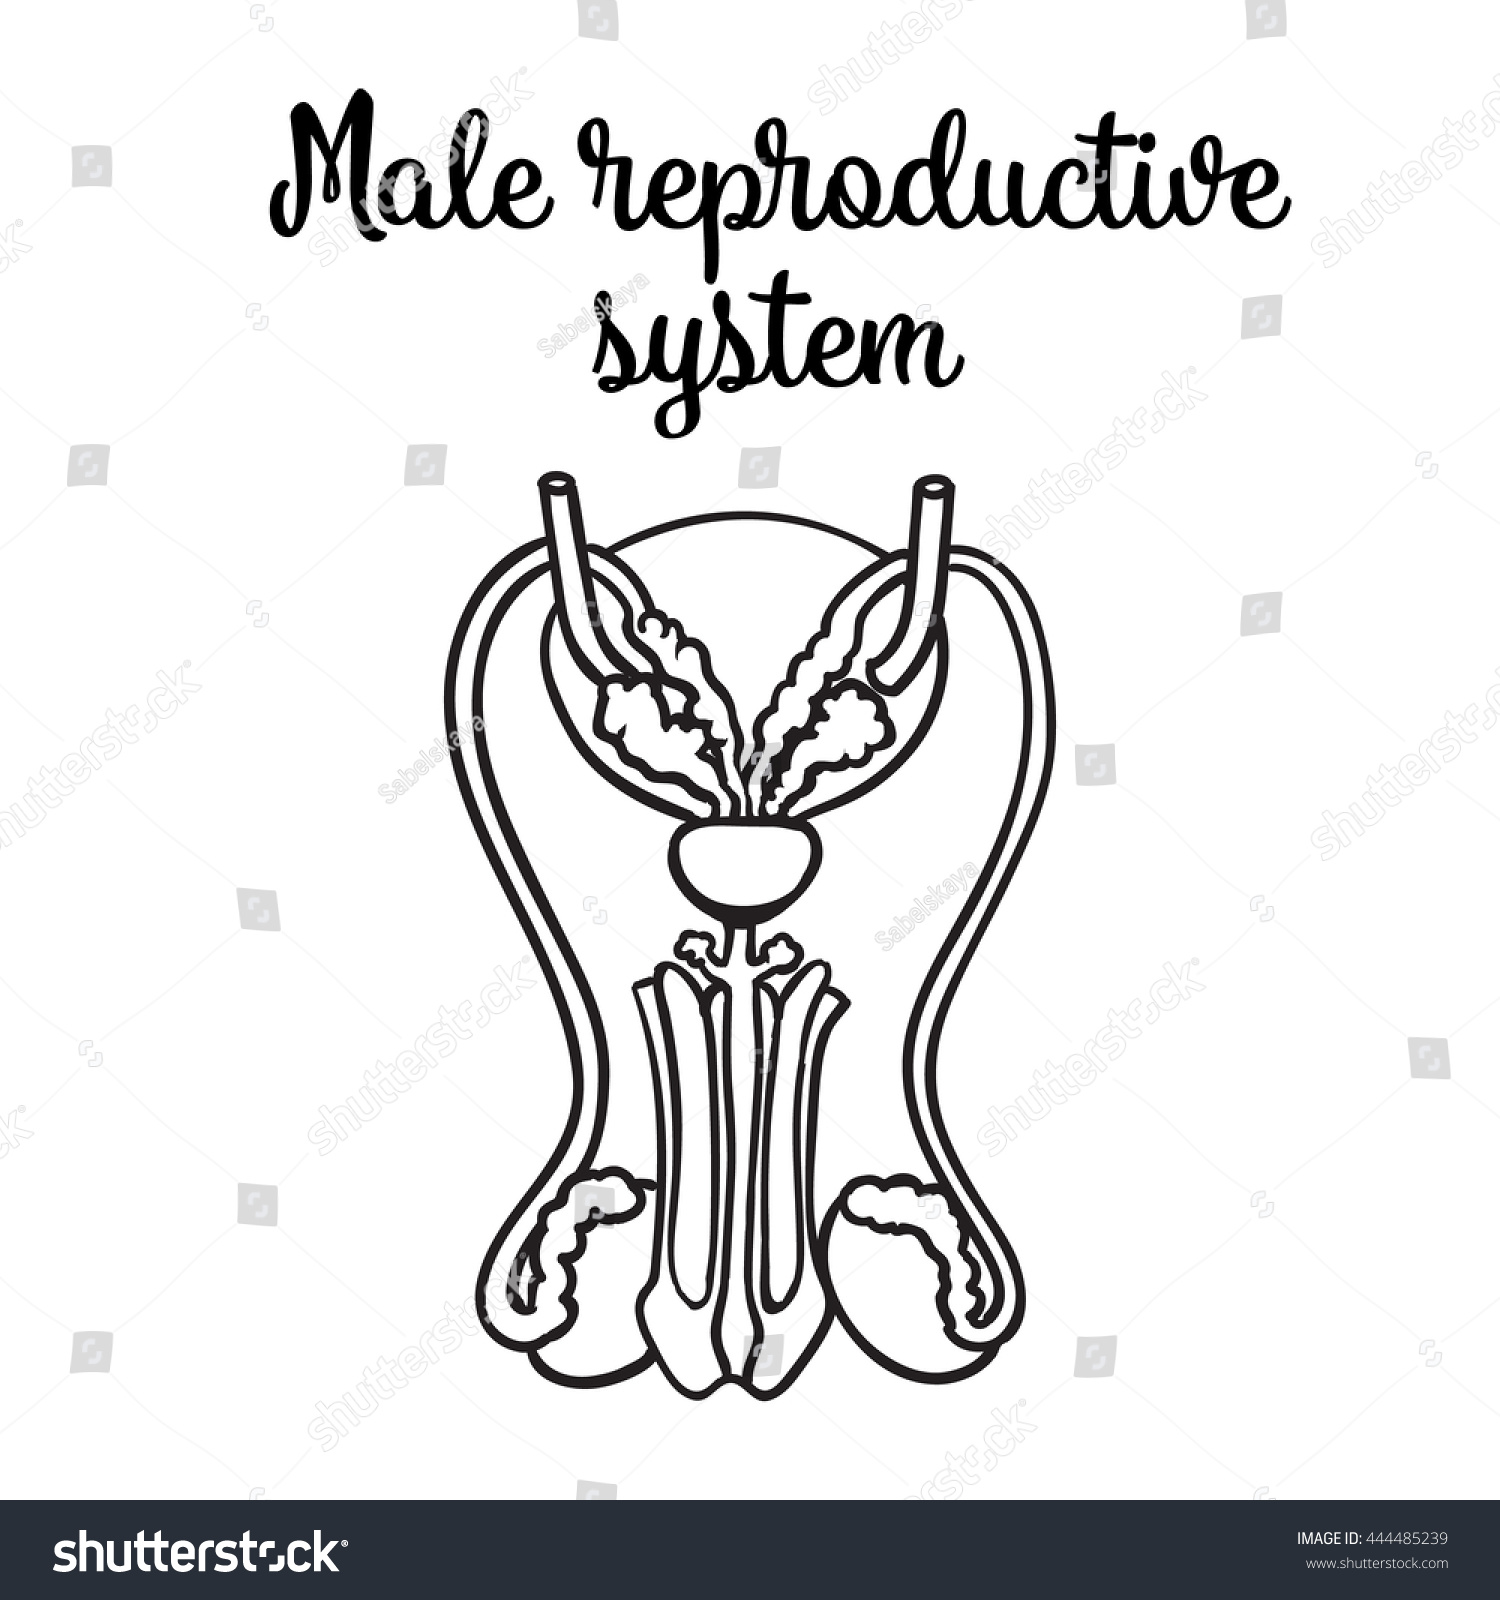 male reproductive system vector sketch handdrawn stock vector